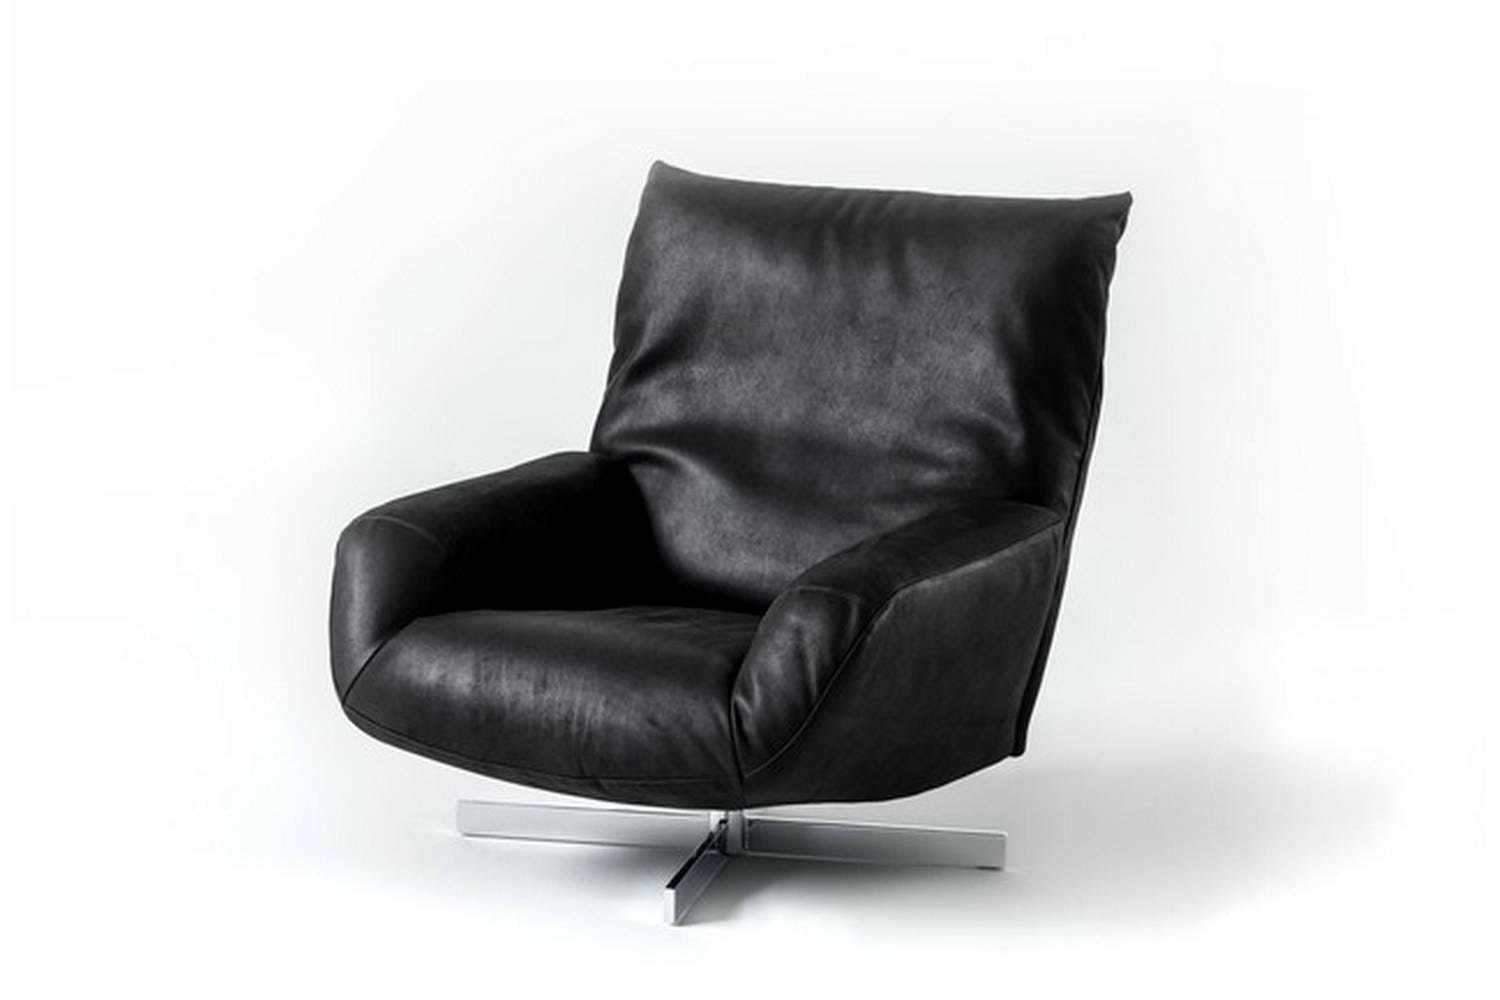 Chiara Armchair by Francesco Binfare for Edra